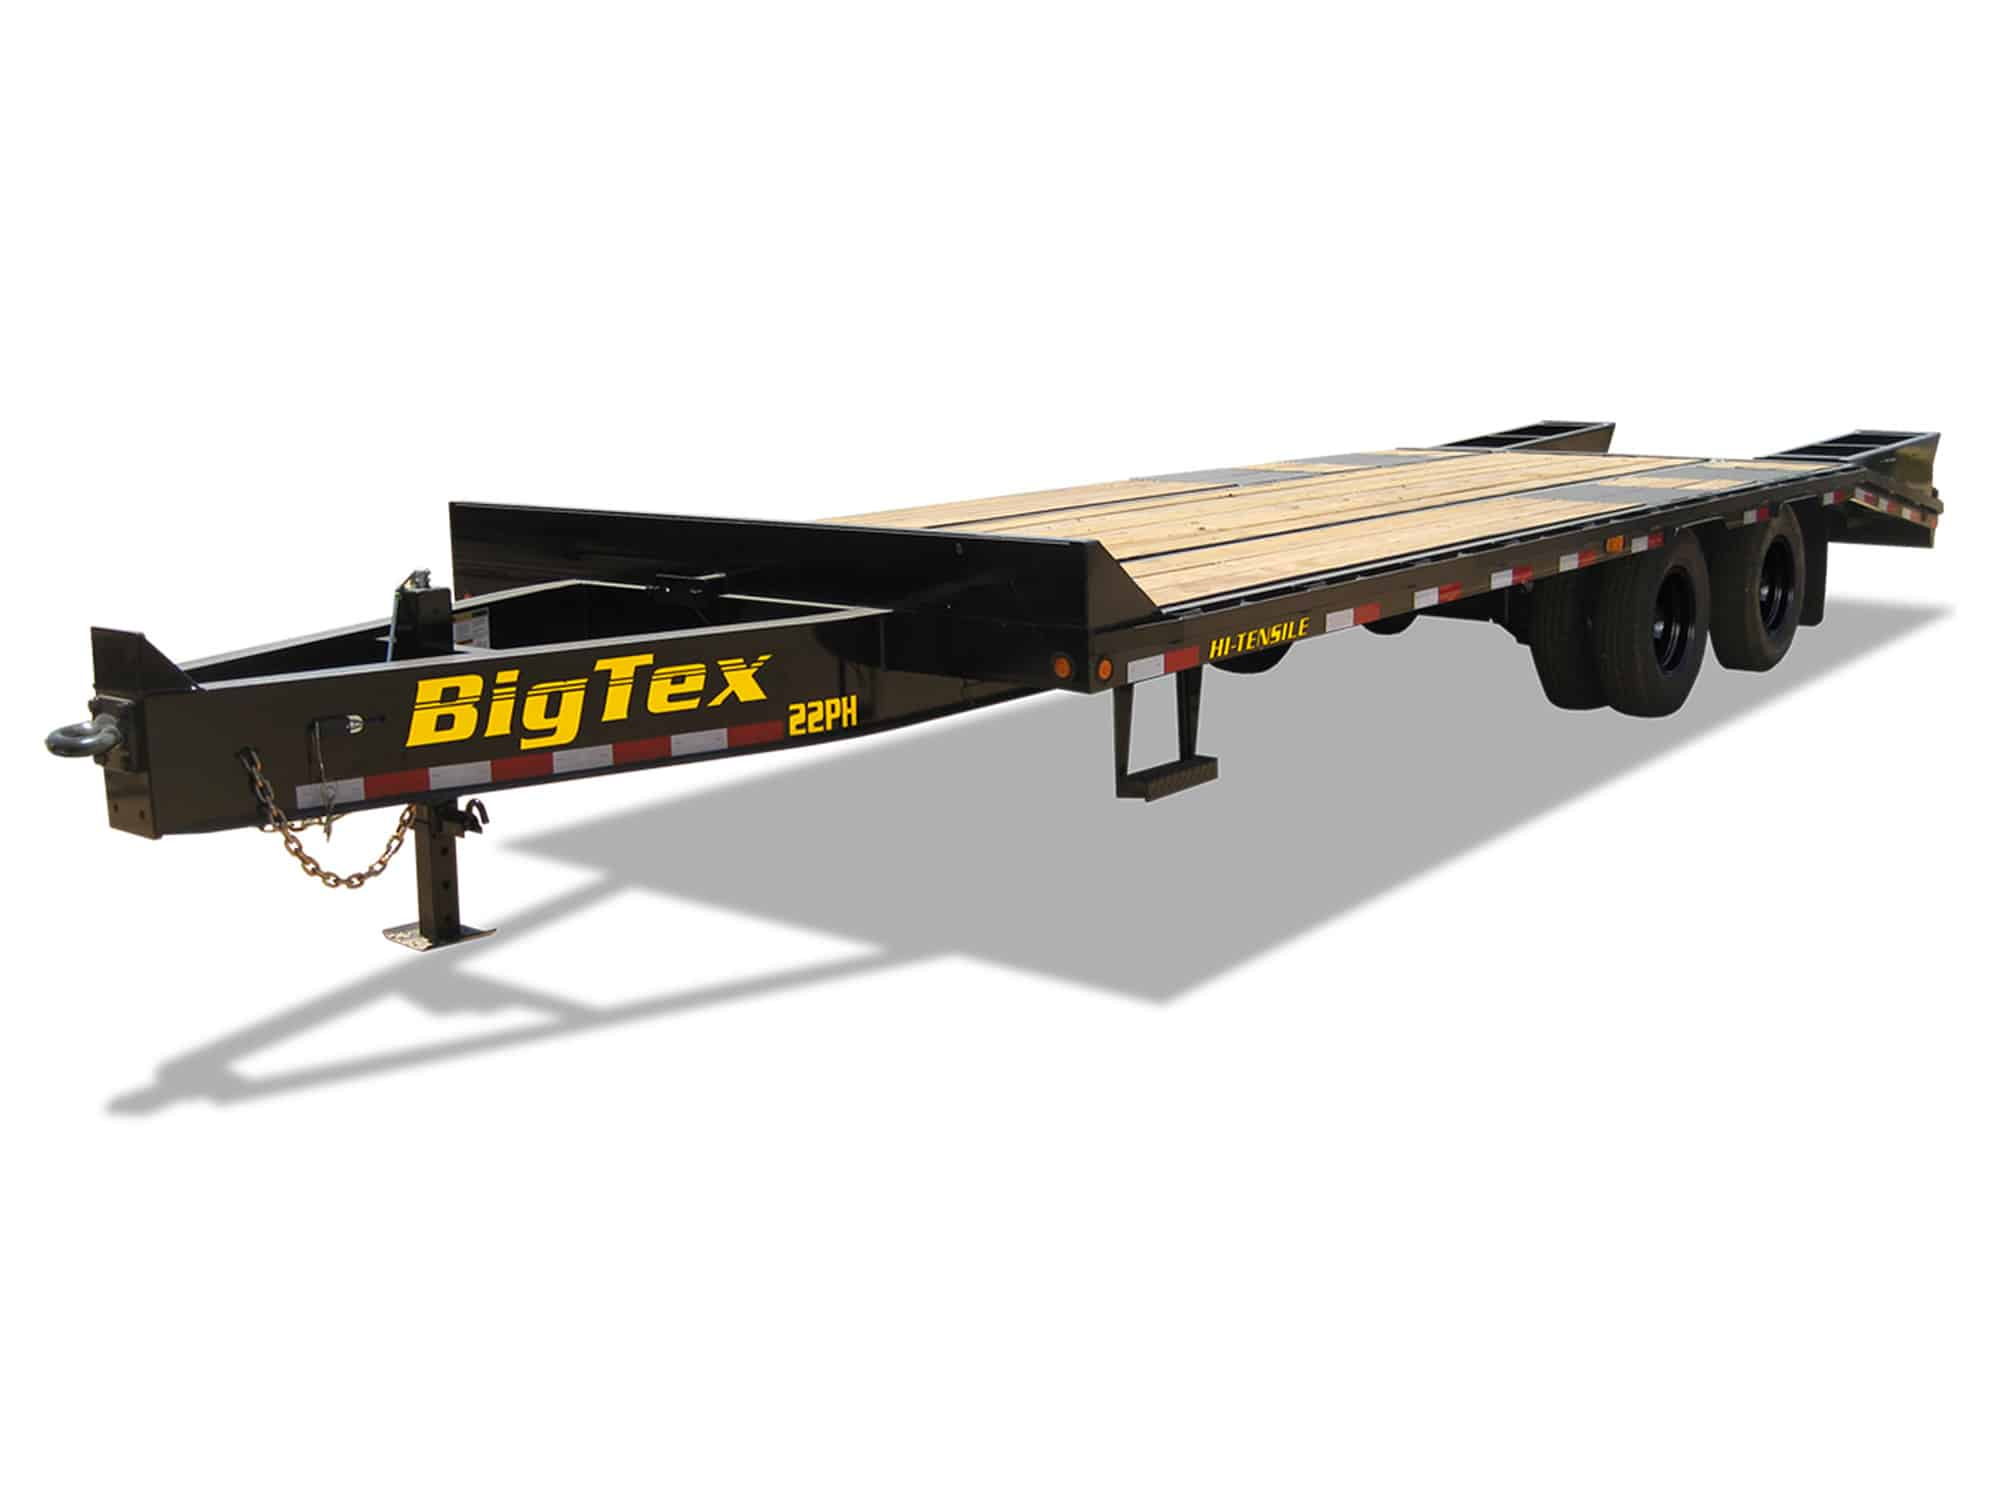 DECK OVER EQUPMENT TRAILER WITH 1/3 RAMPS